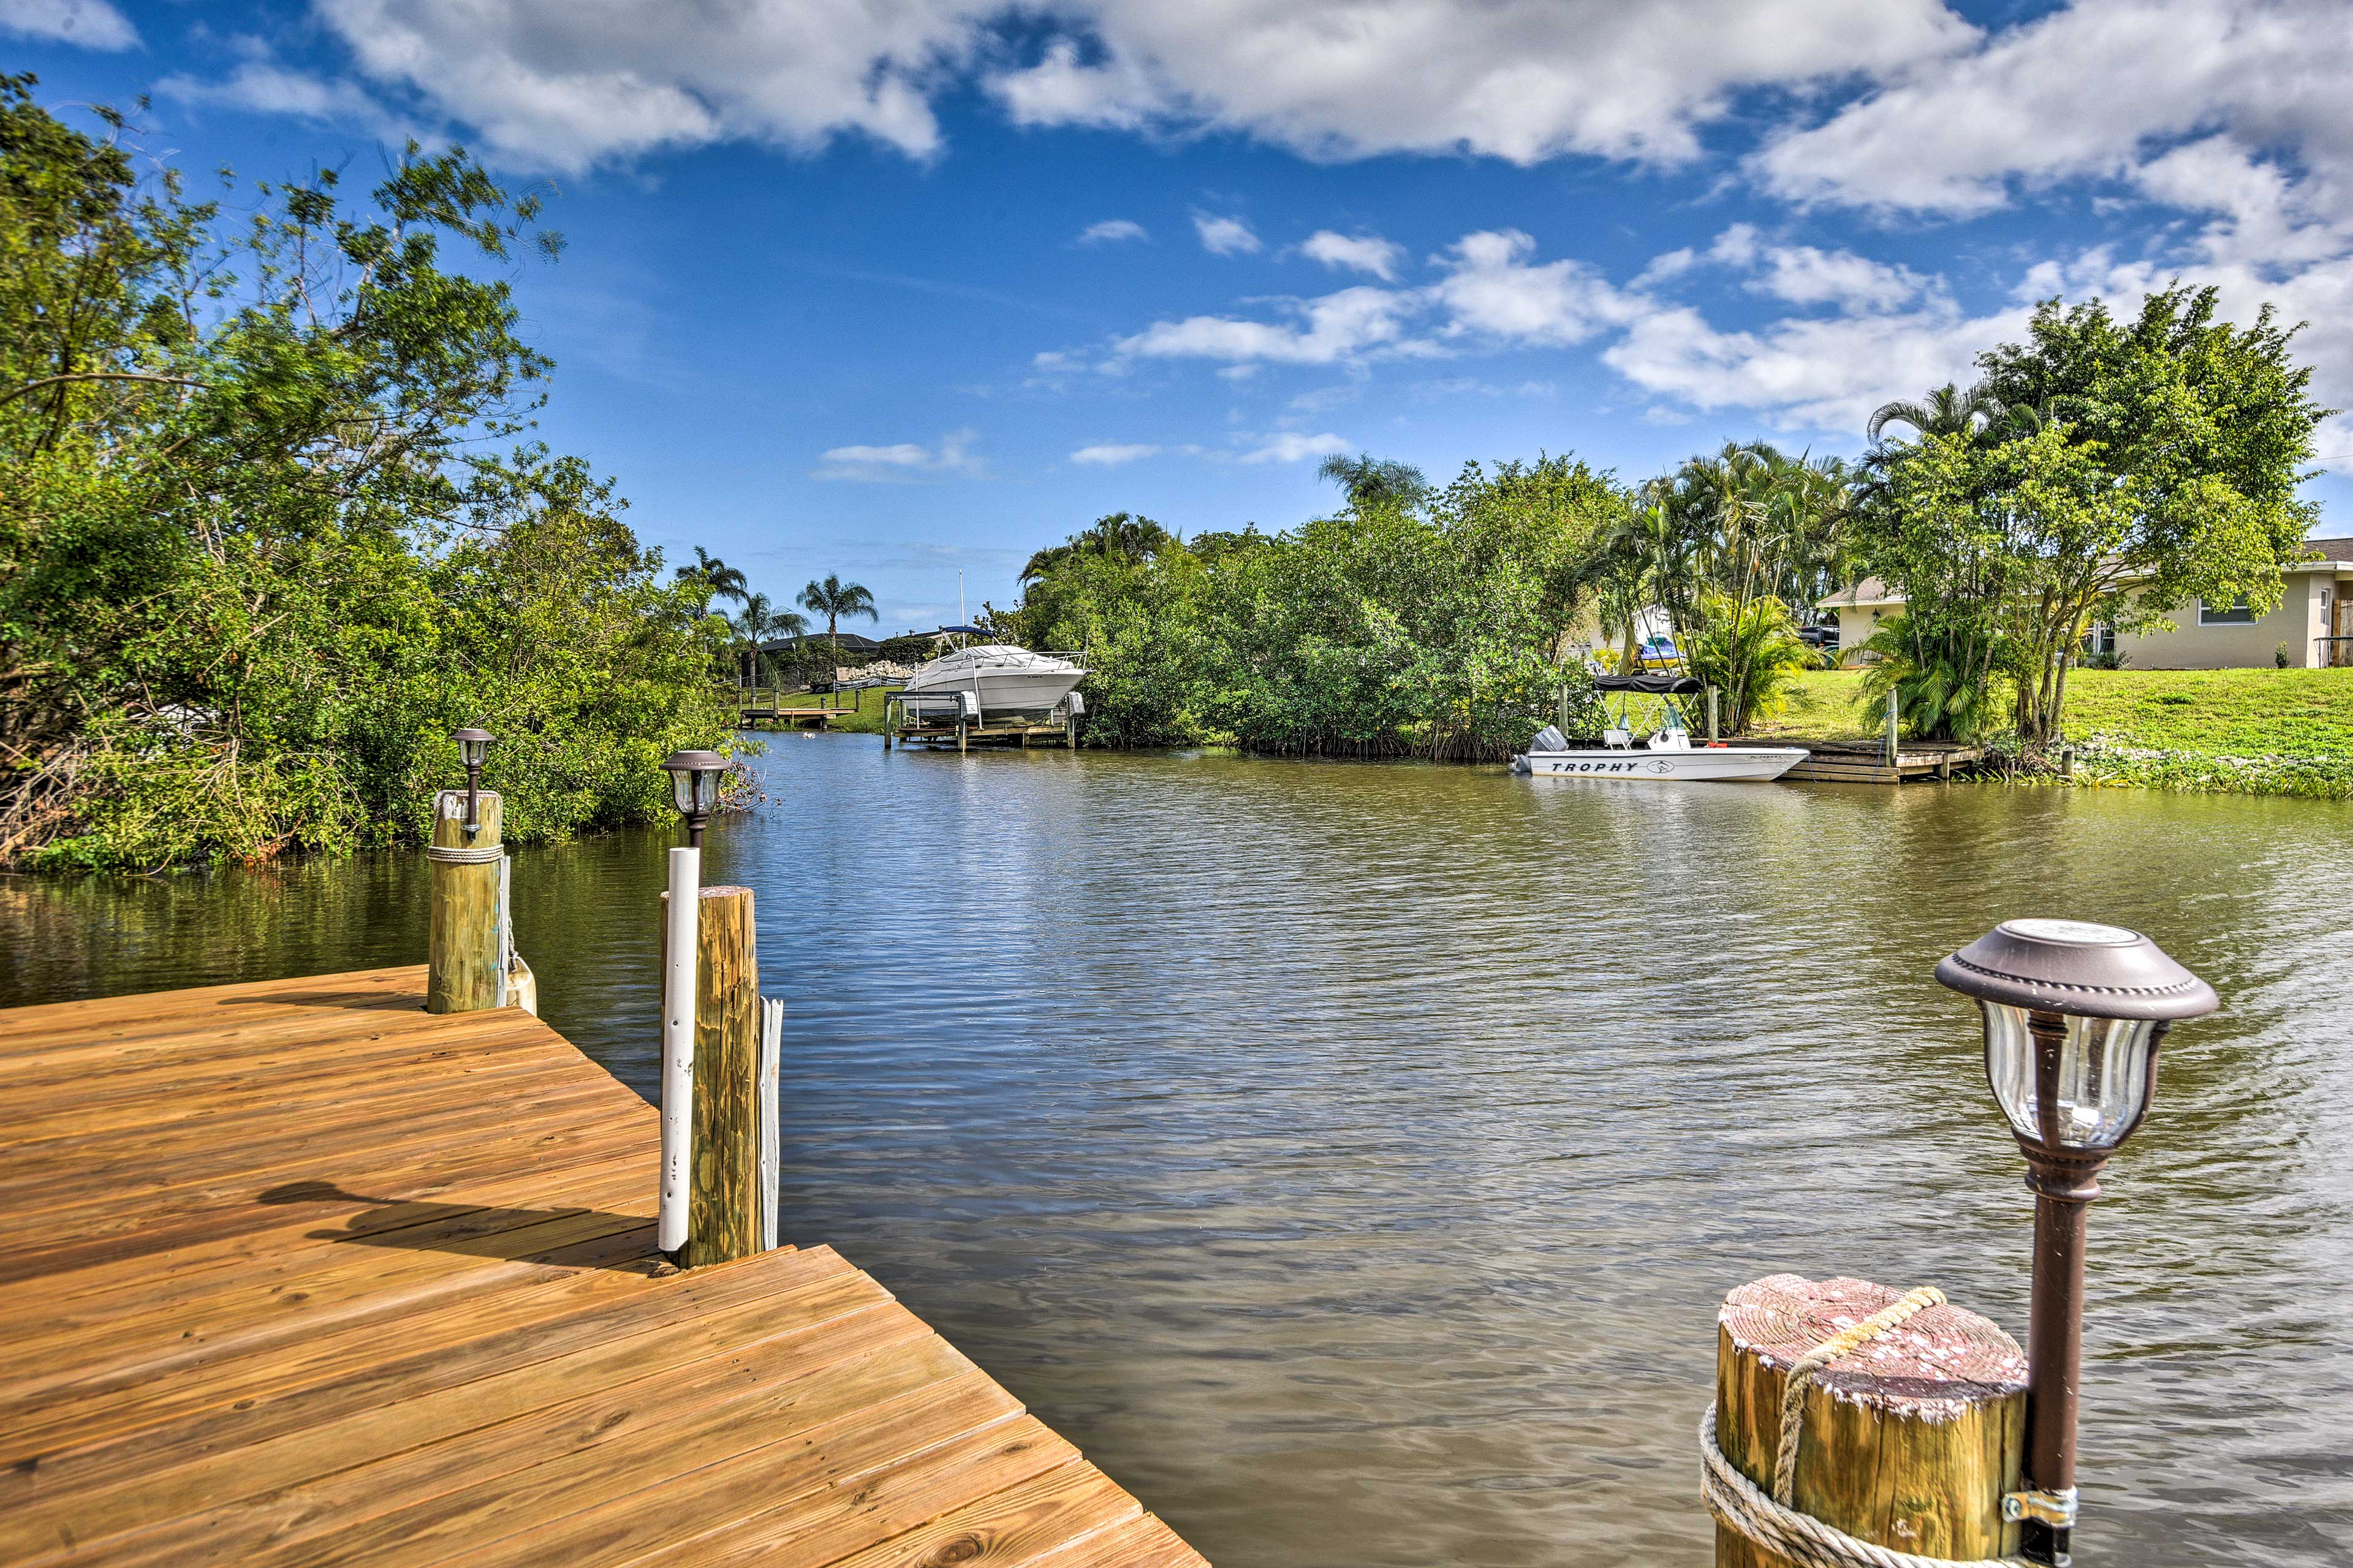 Get ready to spend hours on this dock!